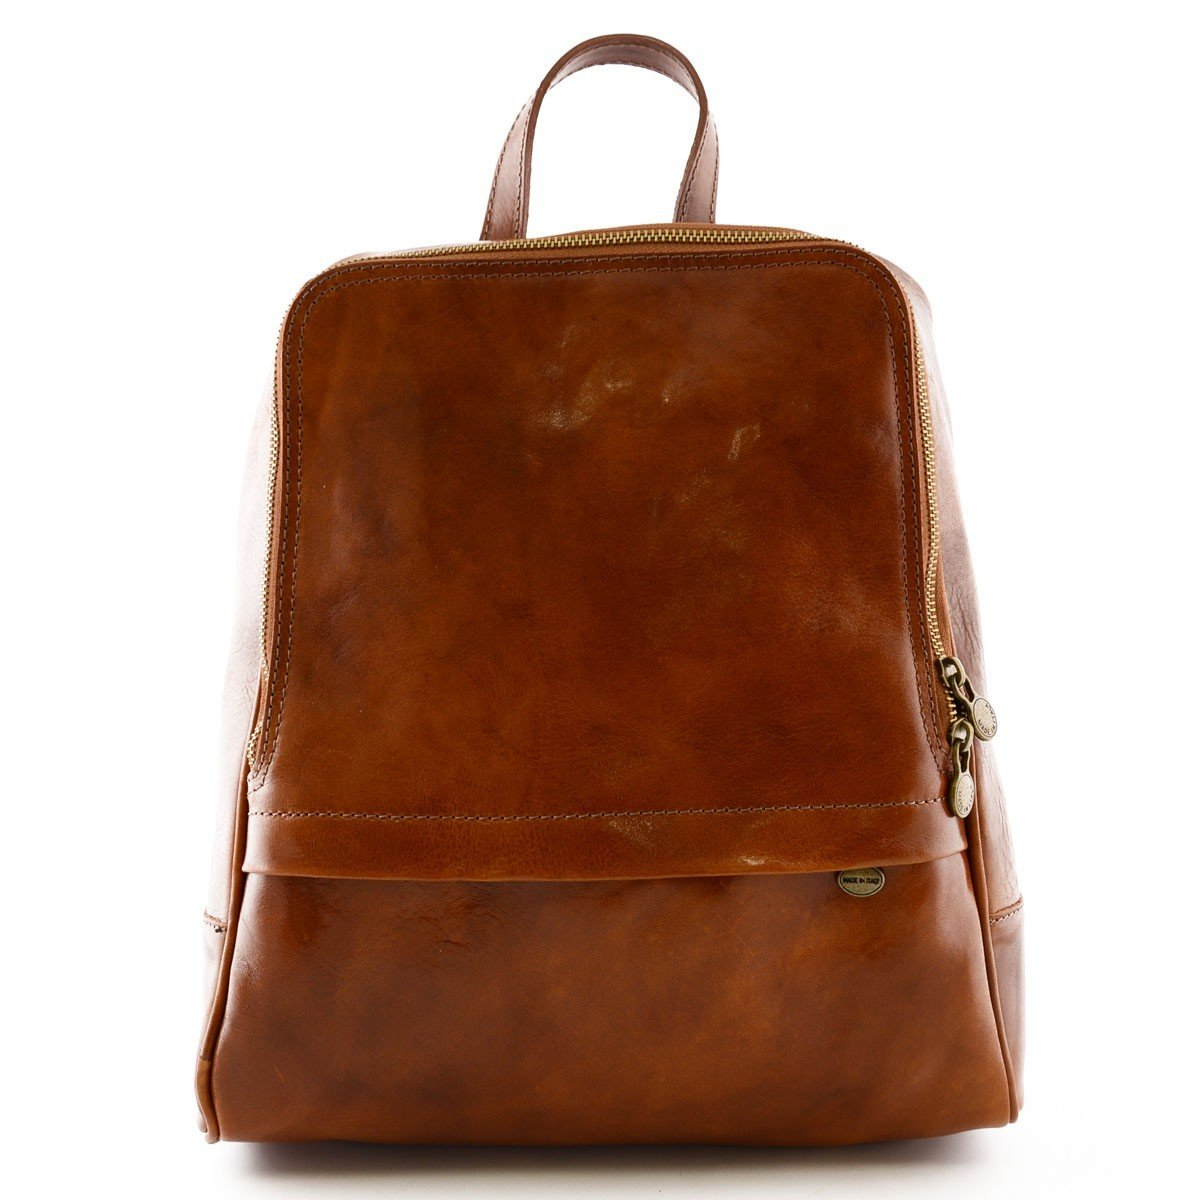 Made In Italy Genuine Leather Backpack For Men With Front Pocket Color Cognac - Backpack   B01B44BMUC